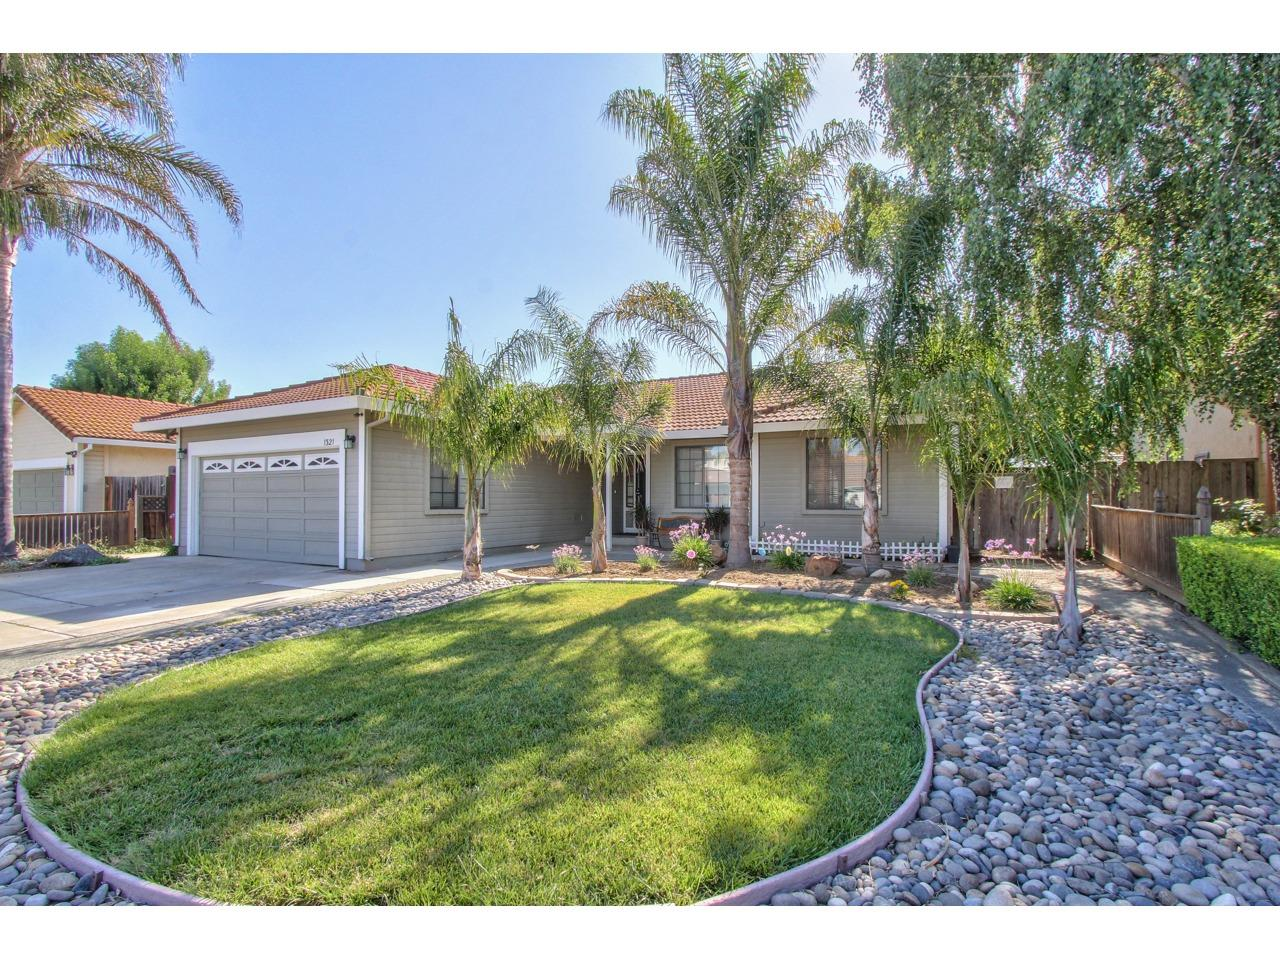 Detail Gallery Image 1 of 21 For 1321 Versailles Dr, Hollister, CA 95023 - 3 Beds | 2 Baths